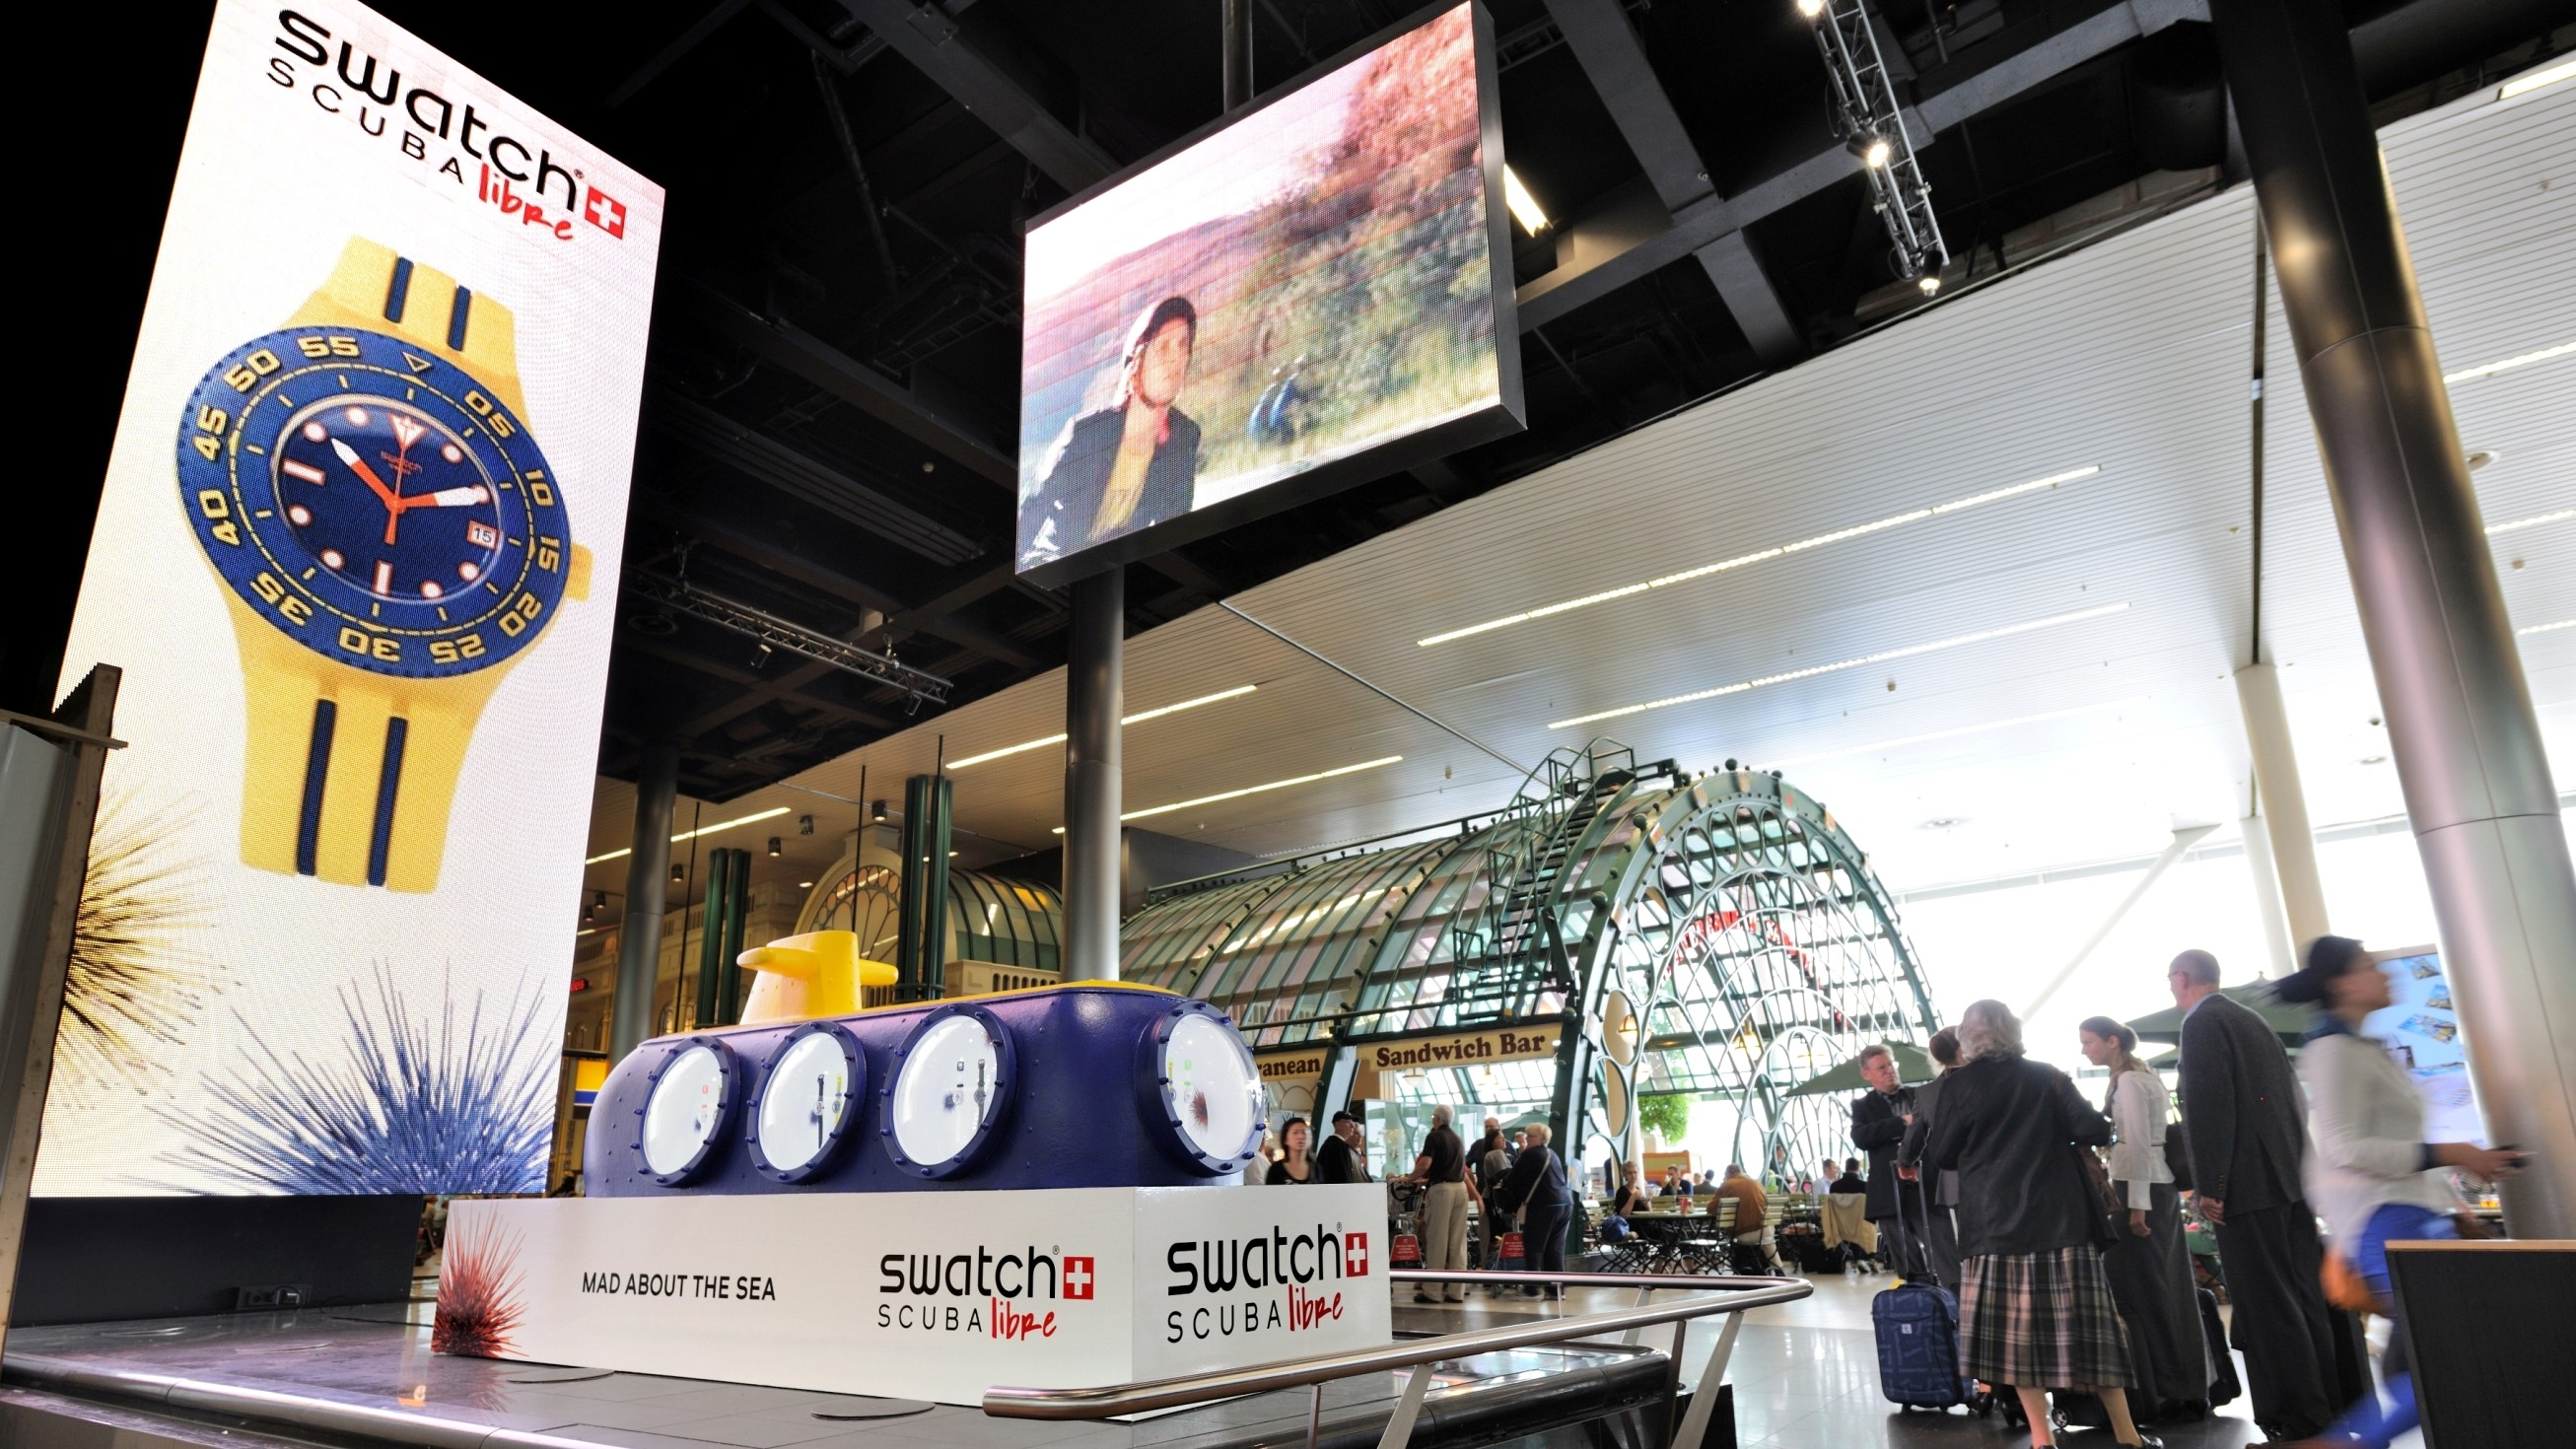 swatch - horloge - beurs - publi air - inflatable - duikboot - stand - aankleding